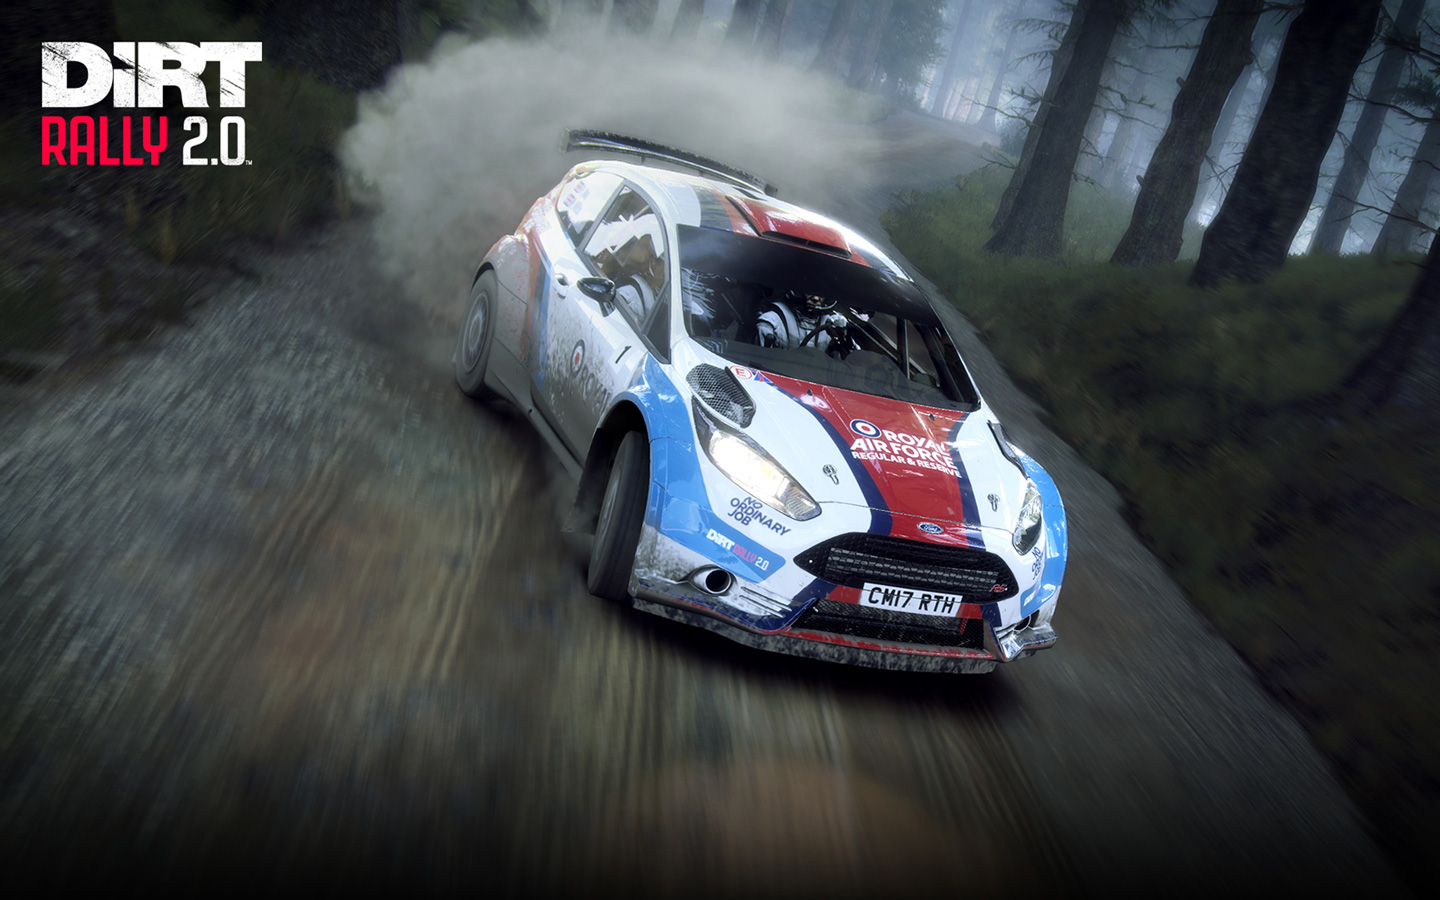 Free Dirt Rally 2.0 Wallpaper in 1440x900